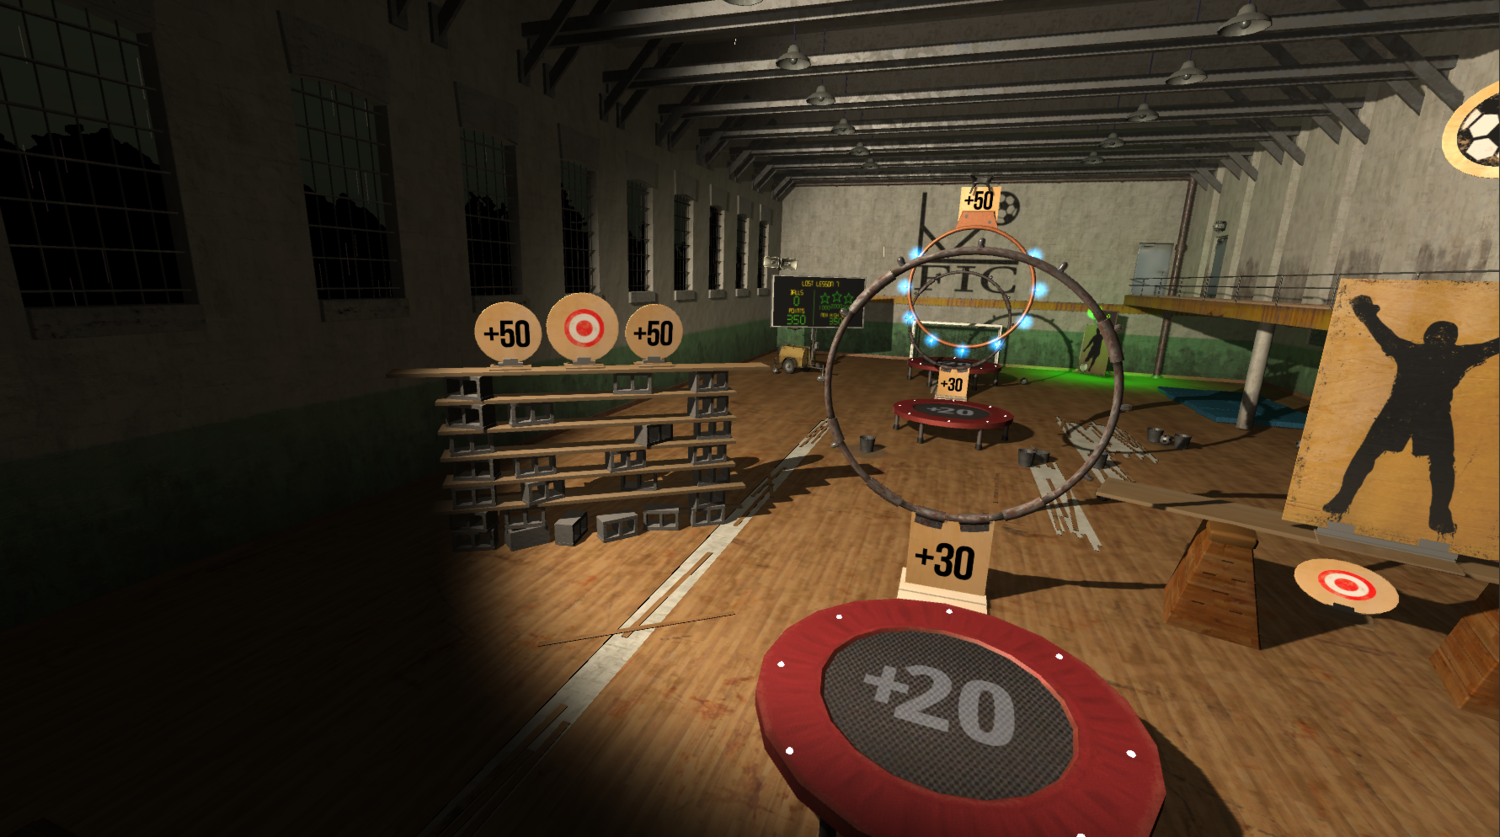 Copy of Trampolines_02.png